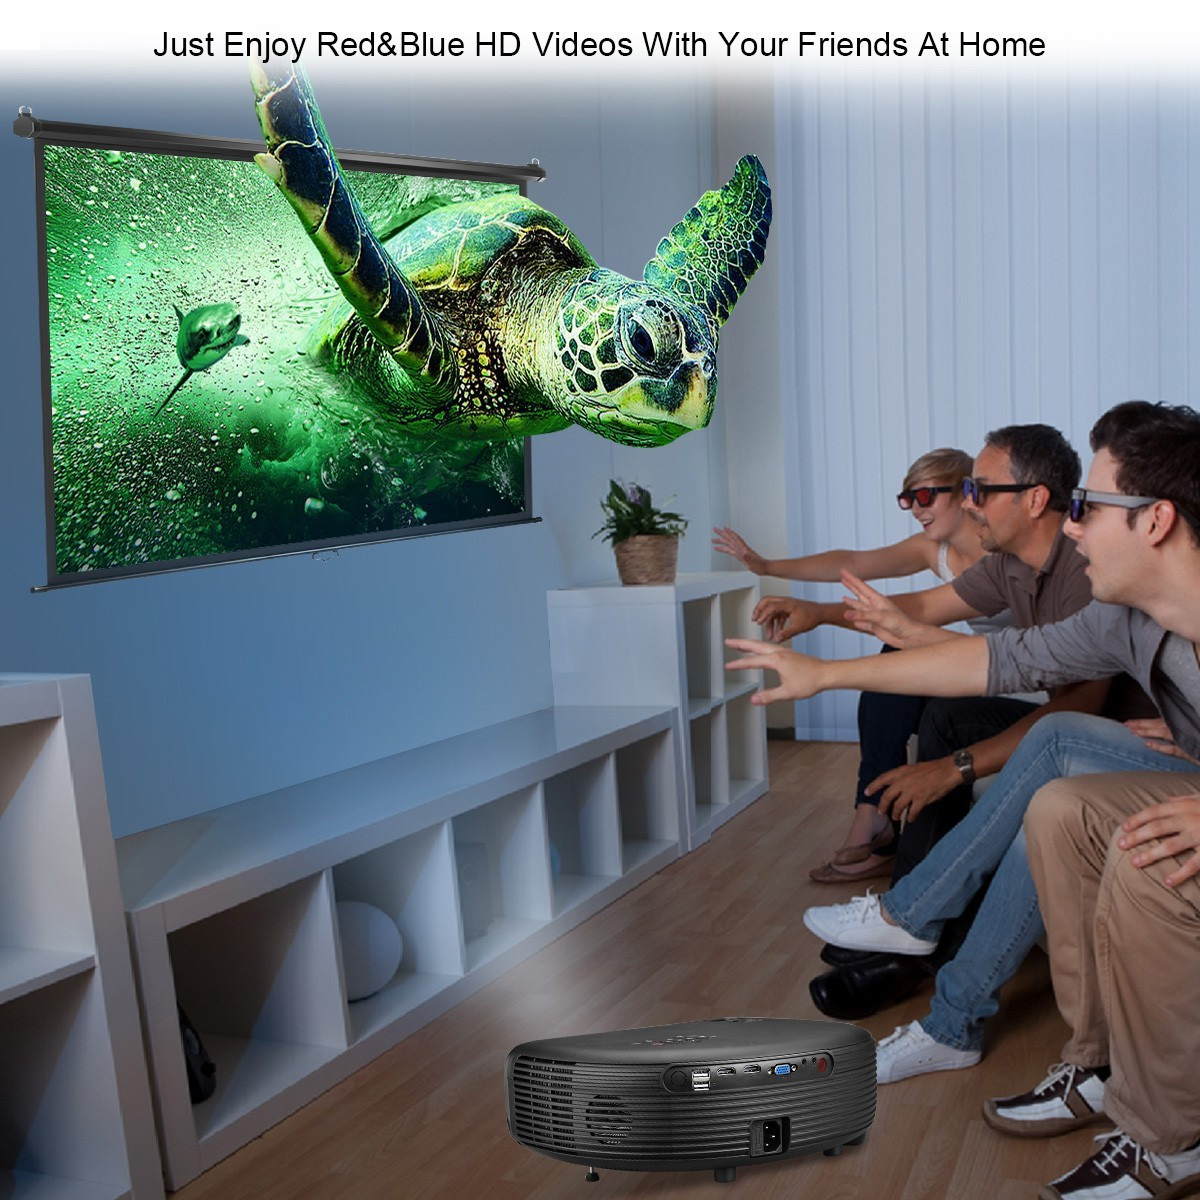 Excelvan CL760 Newly Semicircle Design CL760 3200 Lumens LED Video Projector With 1280x800 Native Resolution Support 1080P HD Movie for Laptop Xbox USB Speaker Smartphone TV Box- Black US